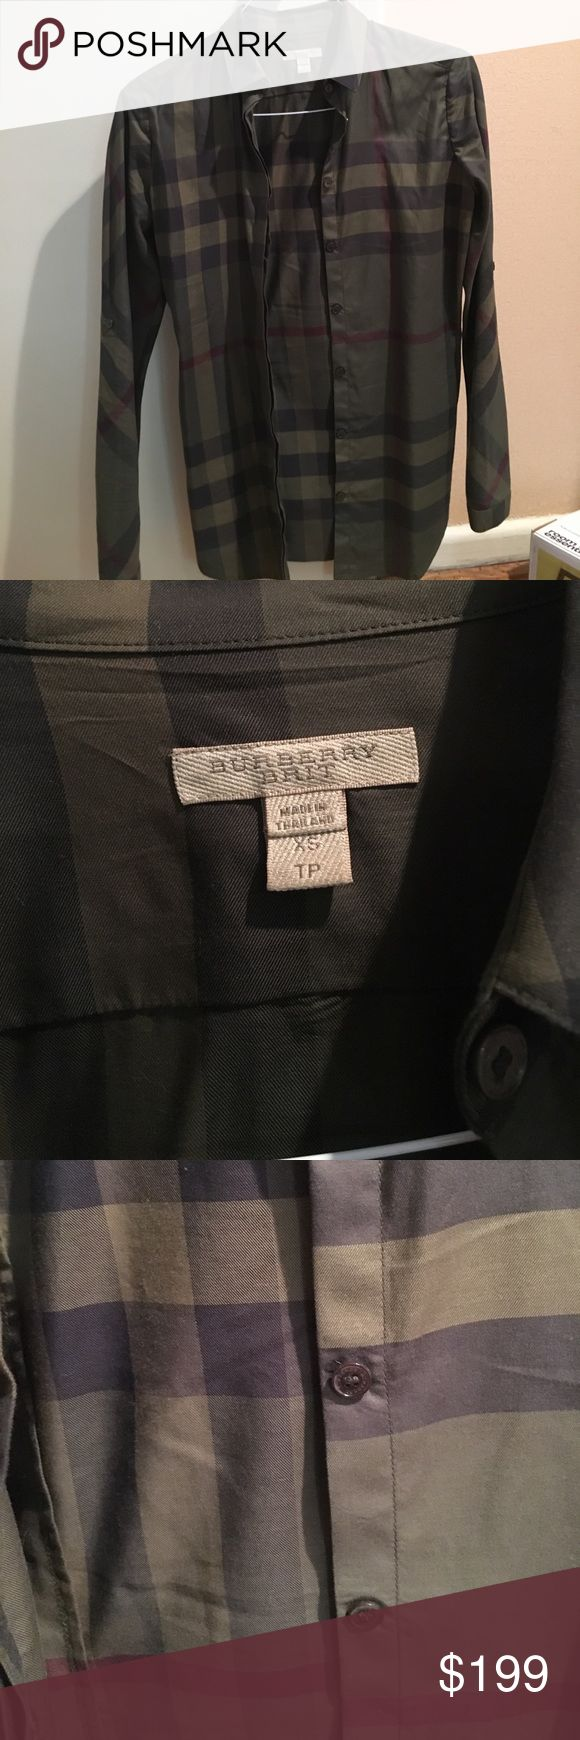 Burberry olive xs ladies button down This is an xs button down Burberry shirt. In excellent condition worn 2 or 3 times by myself. I have unfortunately grown to a size small 😩 Burberry Tops Blouses